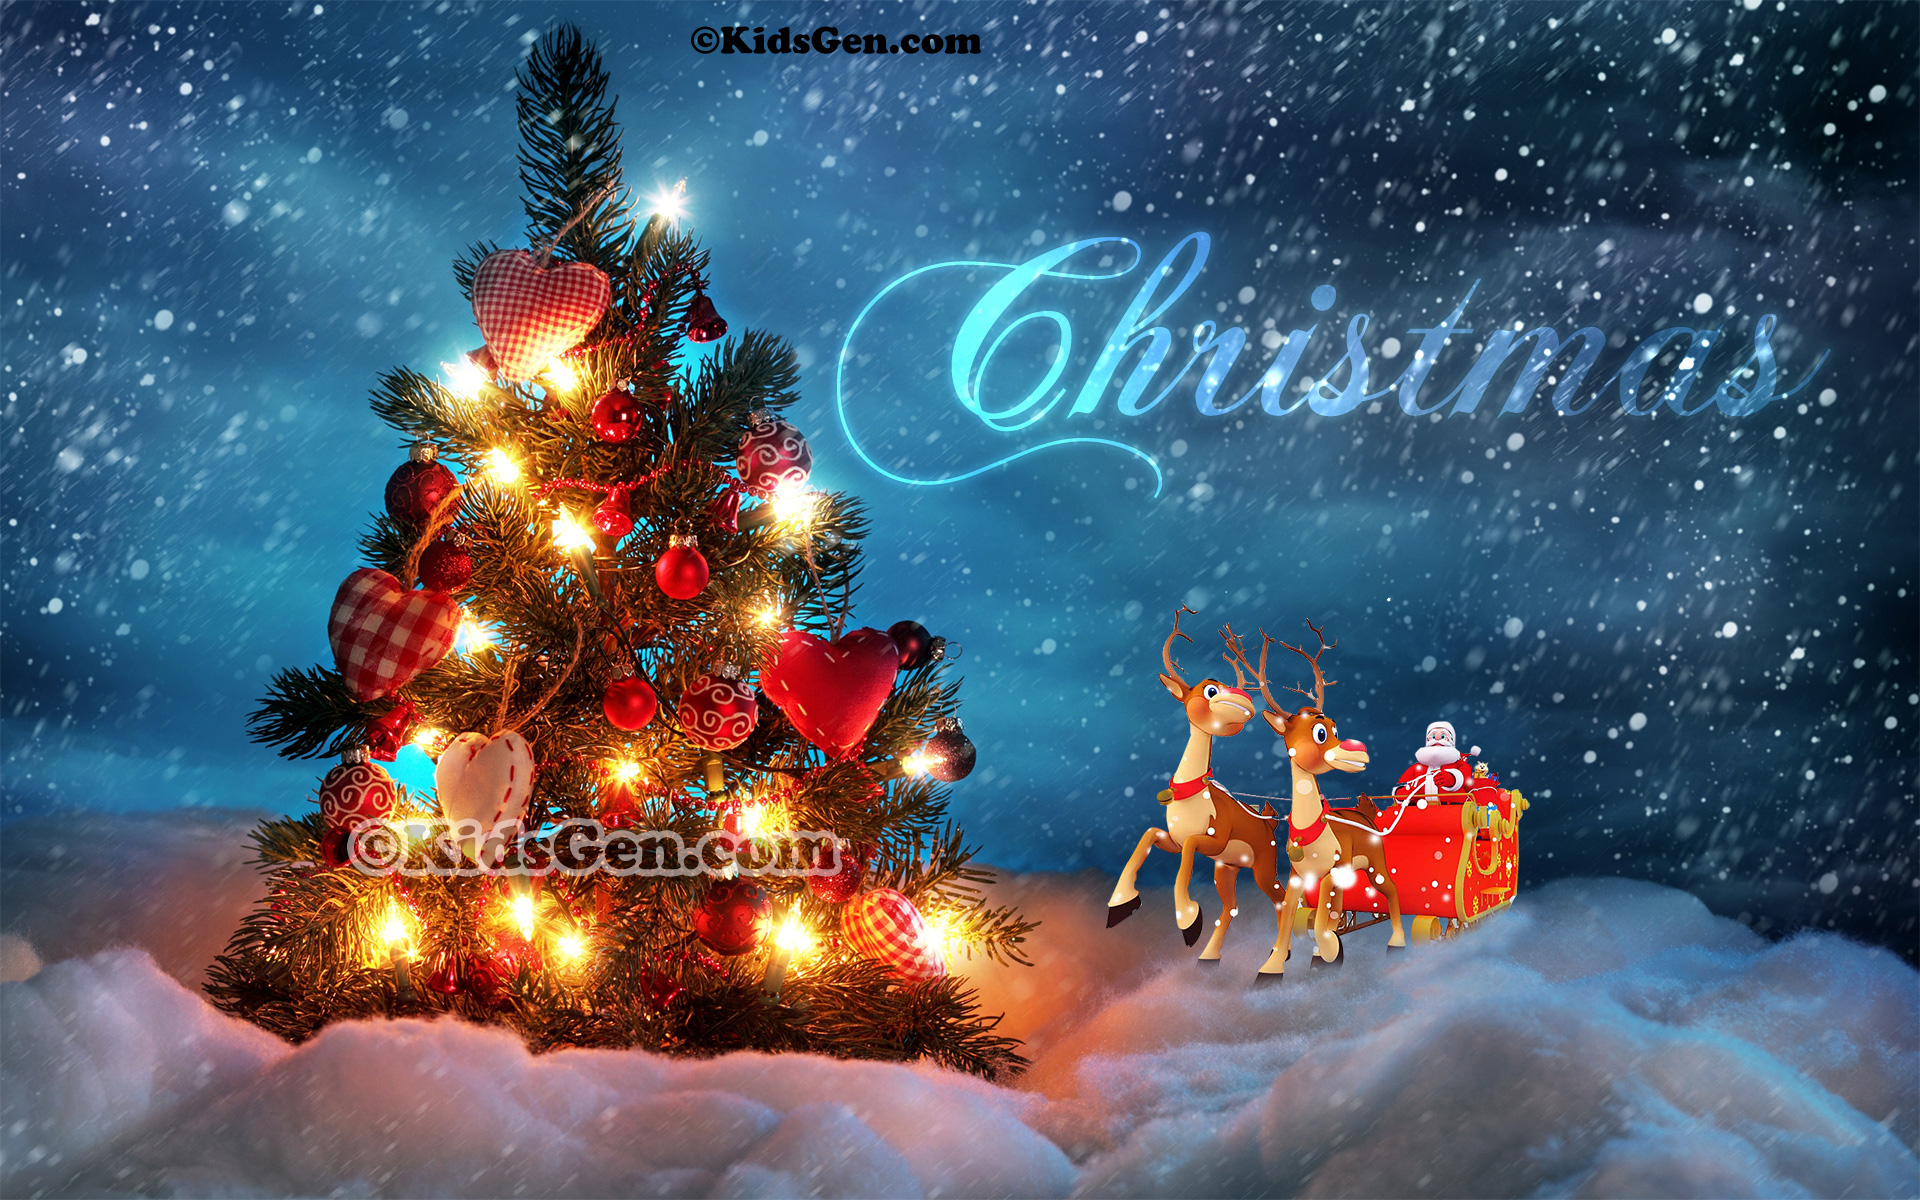 Hd Christmas Wallpaper.Cute Christmas Wallpapers For Kids Christmas Wallpaper For